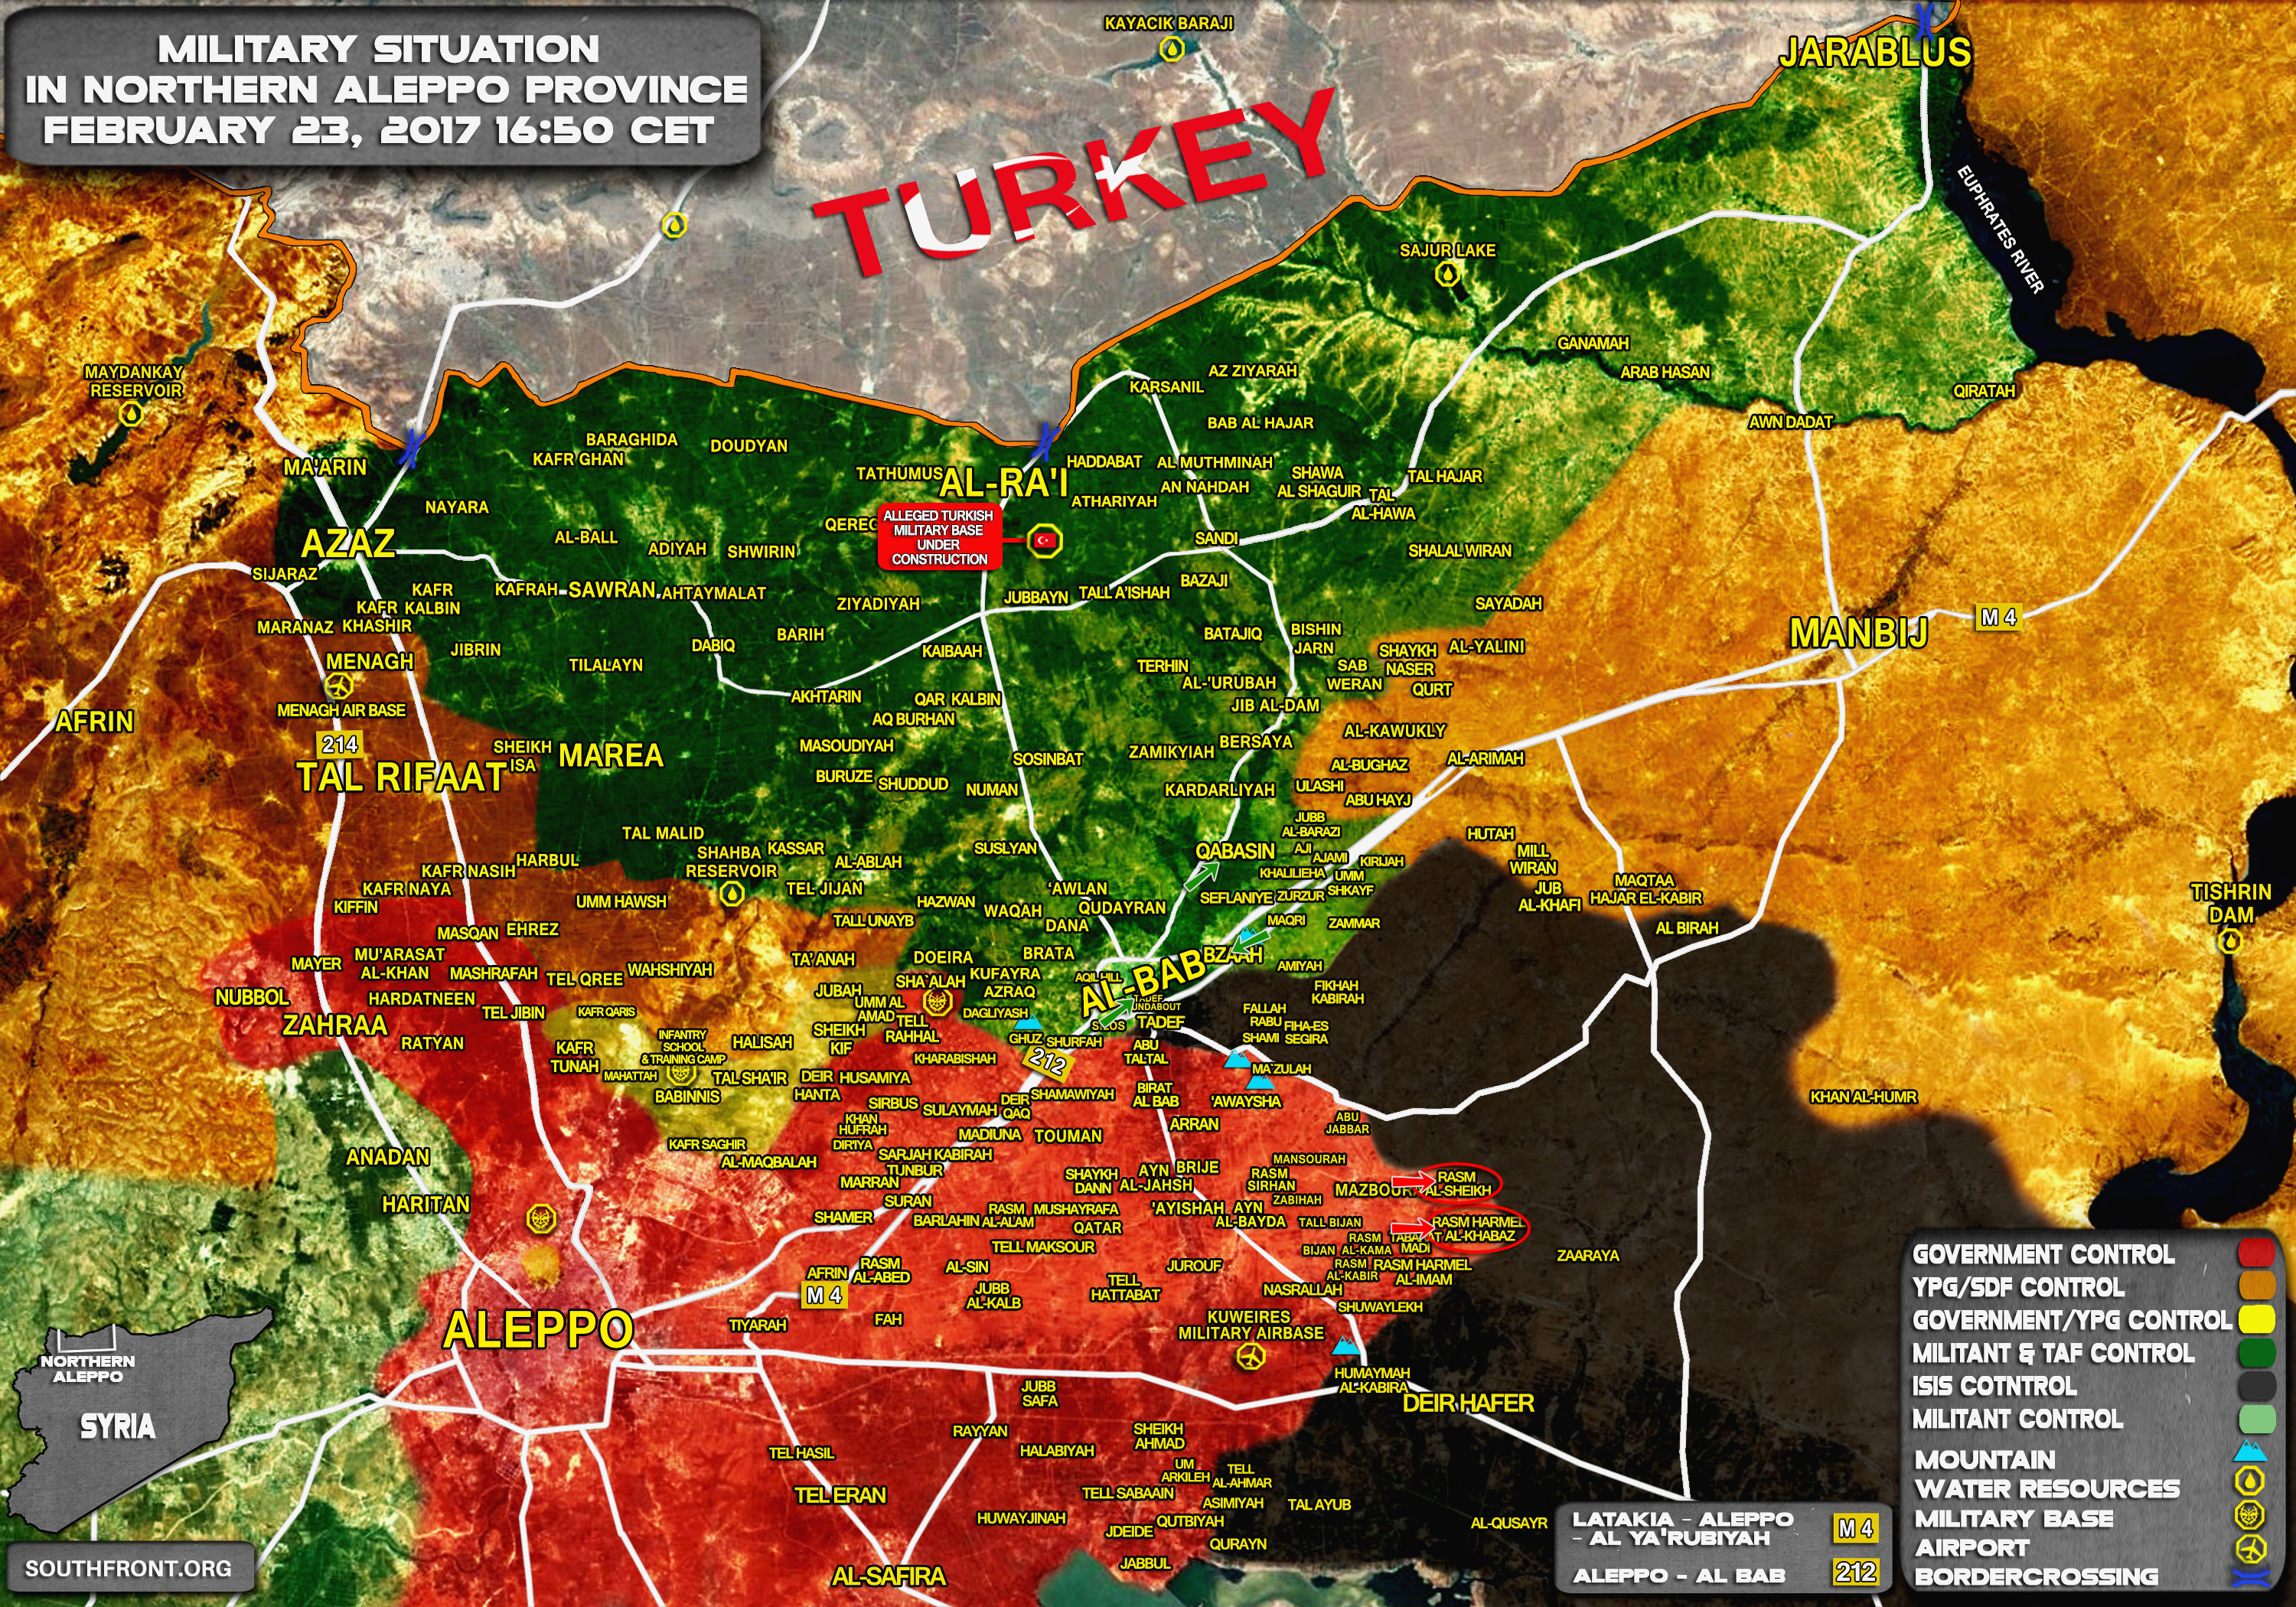 23feb_16_50_northern-aleppo_Syria_War_Map